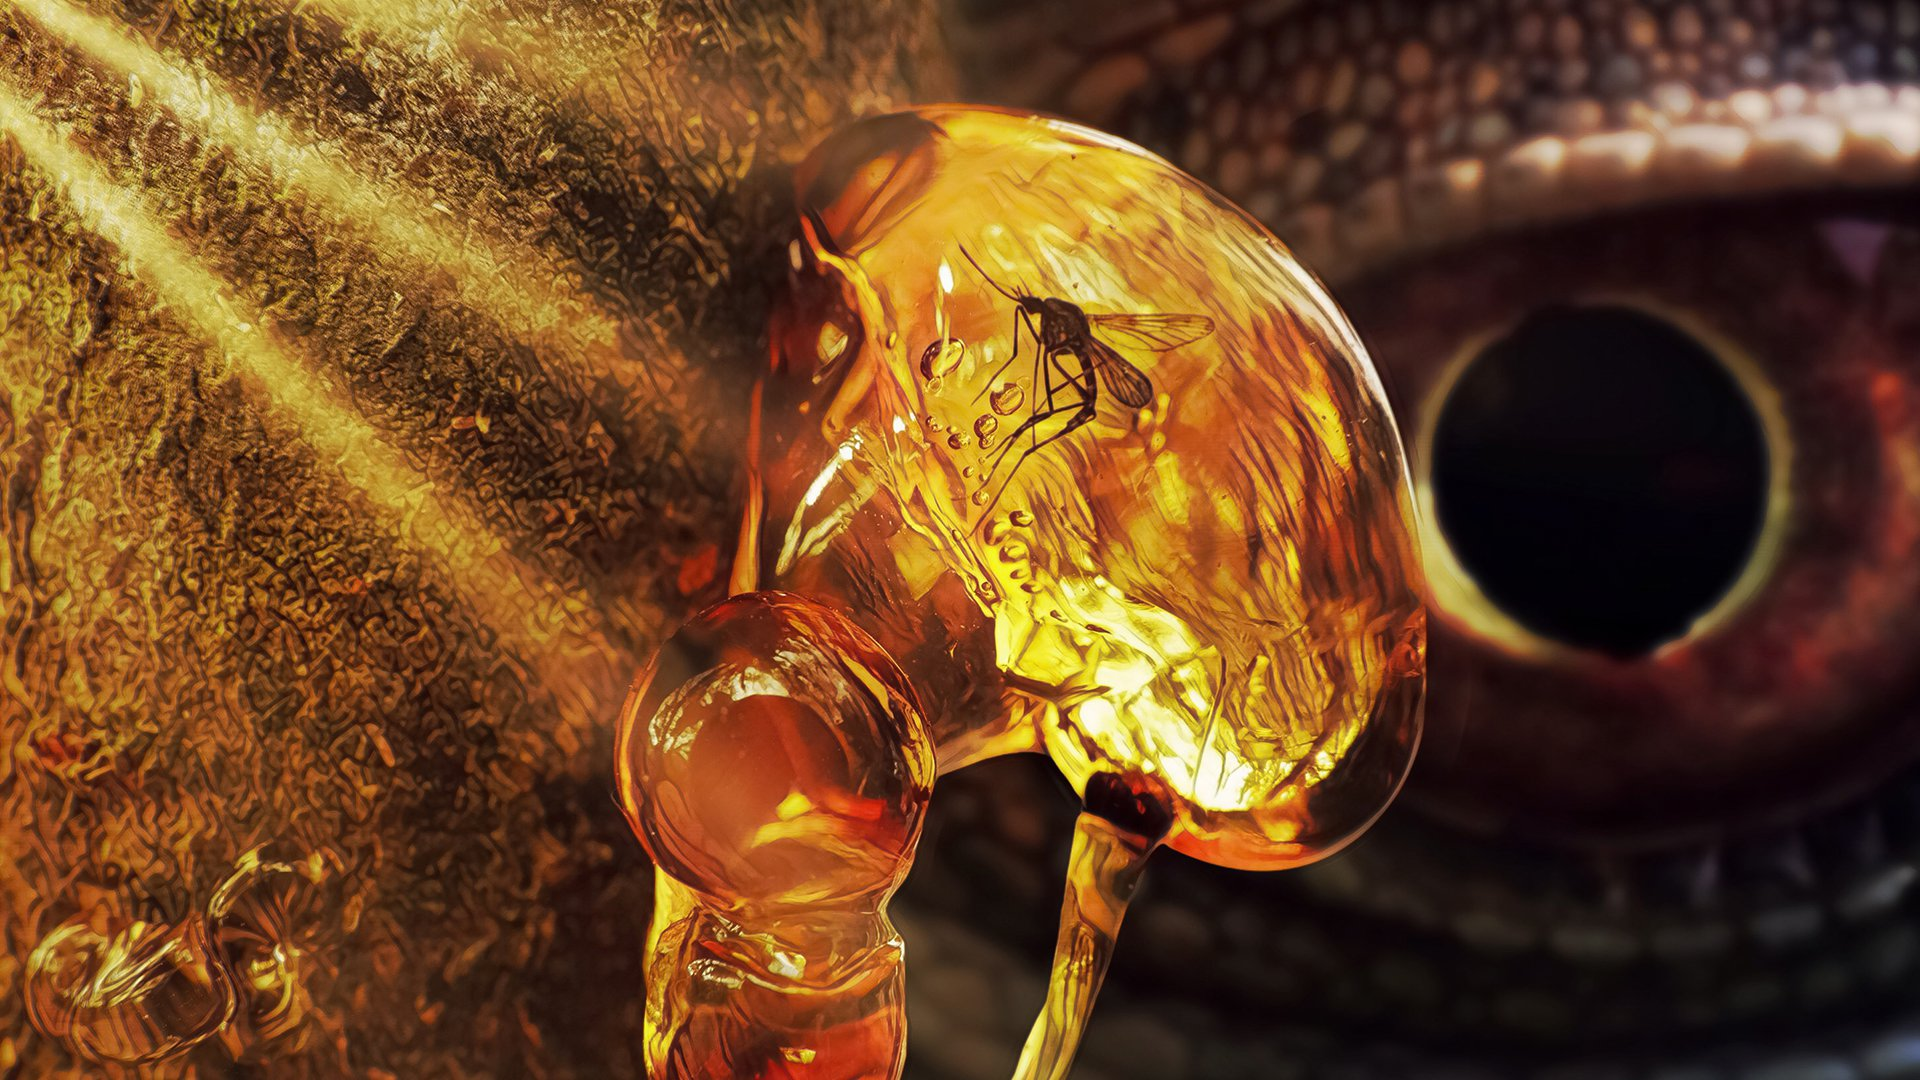 Age of Dinosaurs - Cretaceous Amber